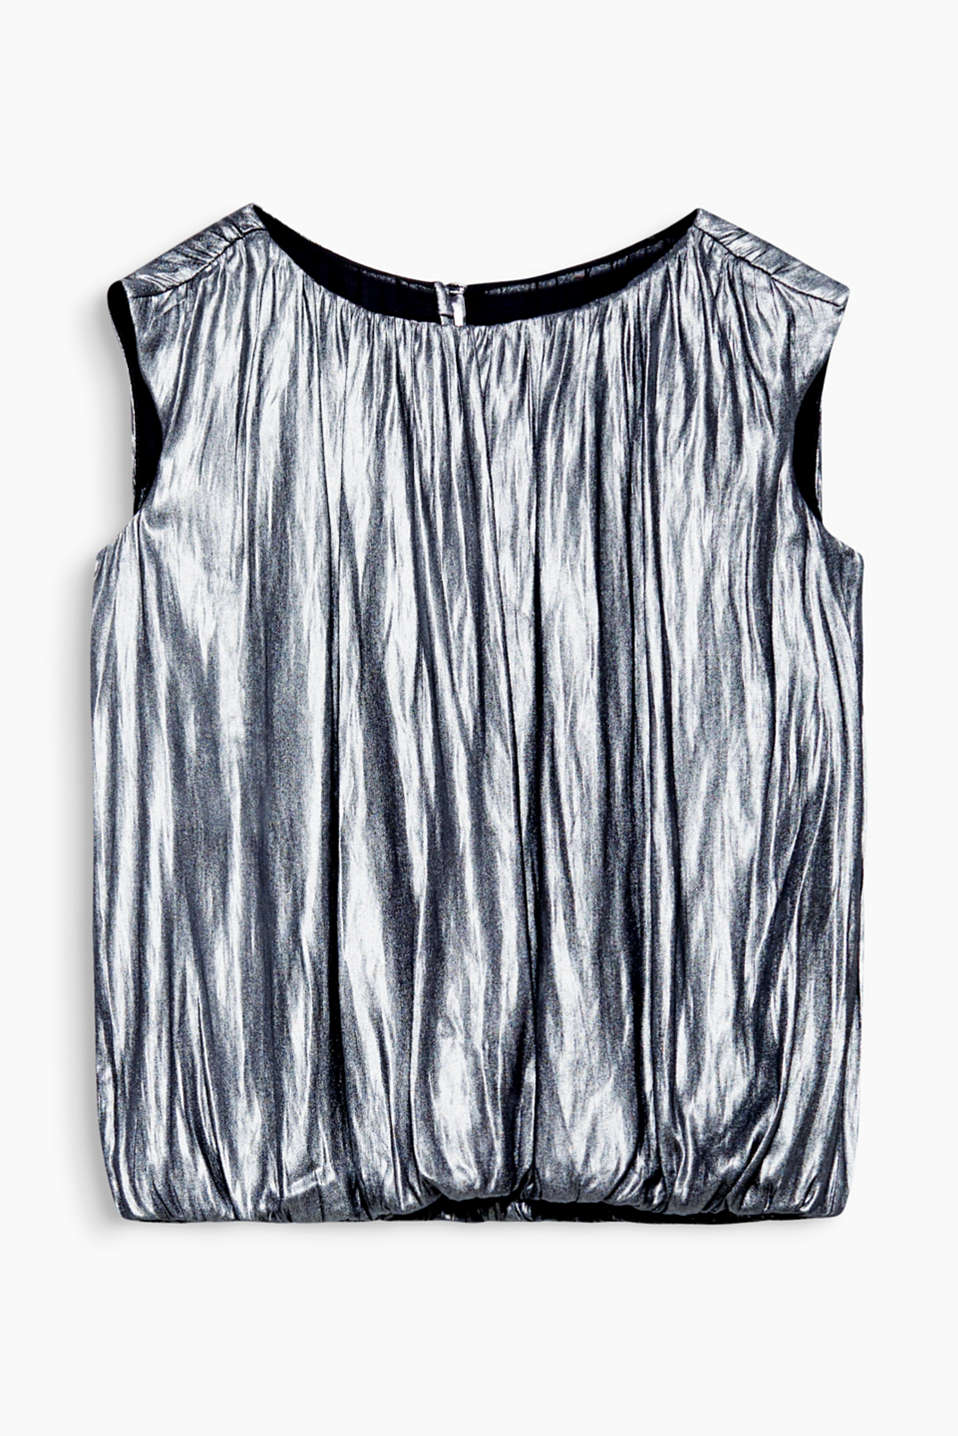 This blouse top has an elegant shiny finish, casual pleats and loose cut, making it a glamour piece for your wardrobe!